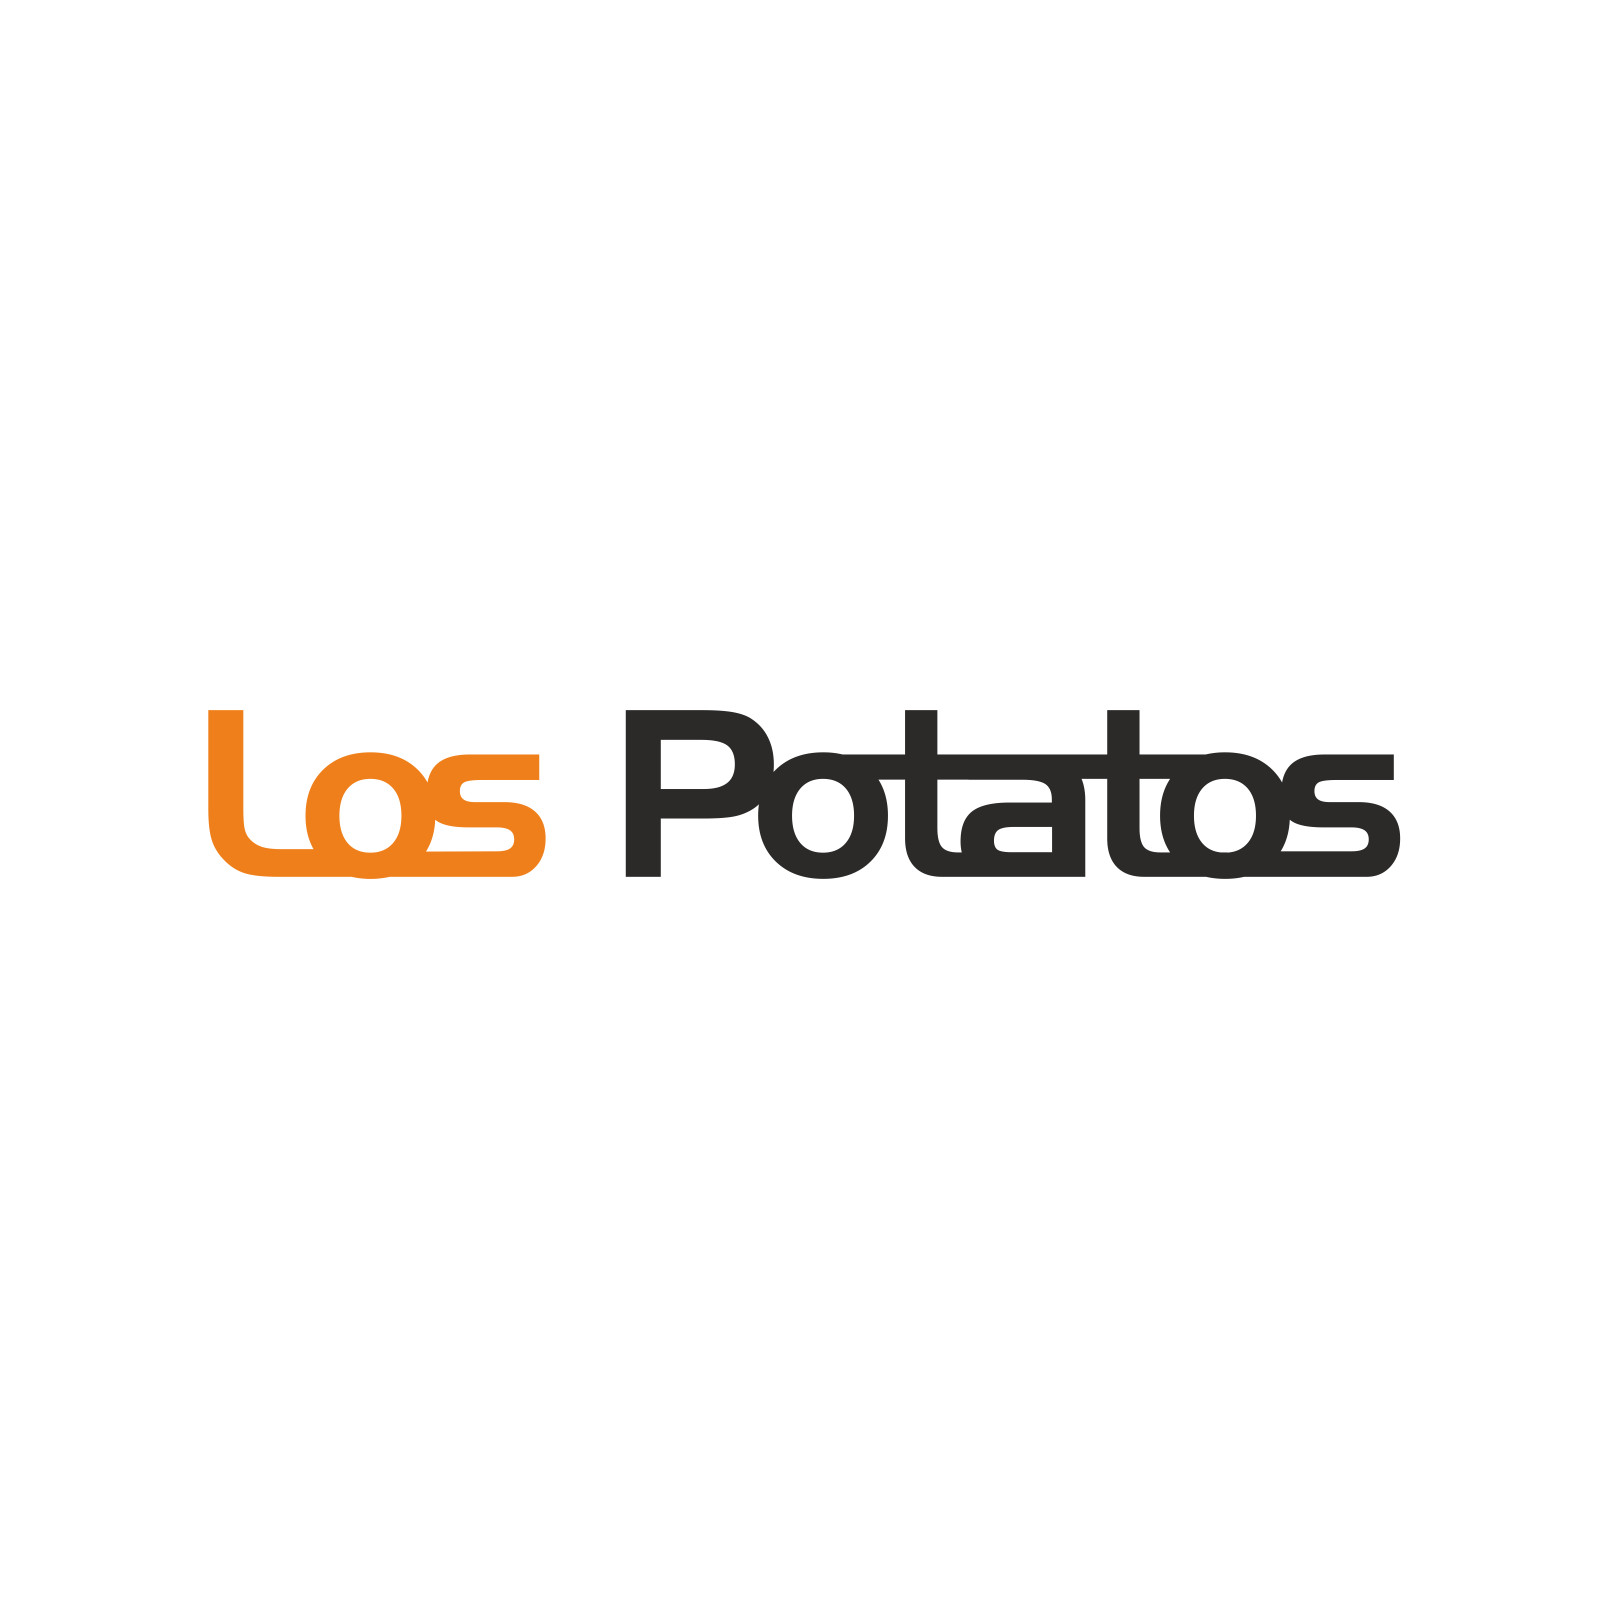 Los Potatos